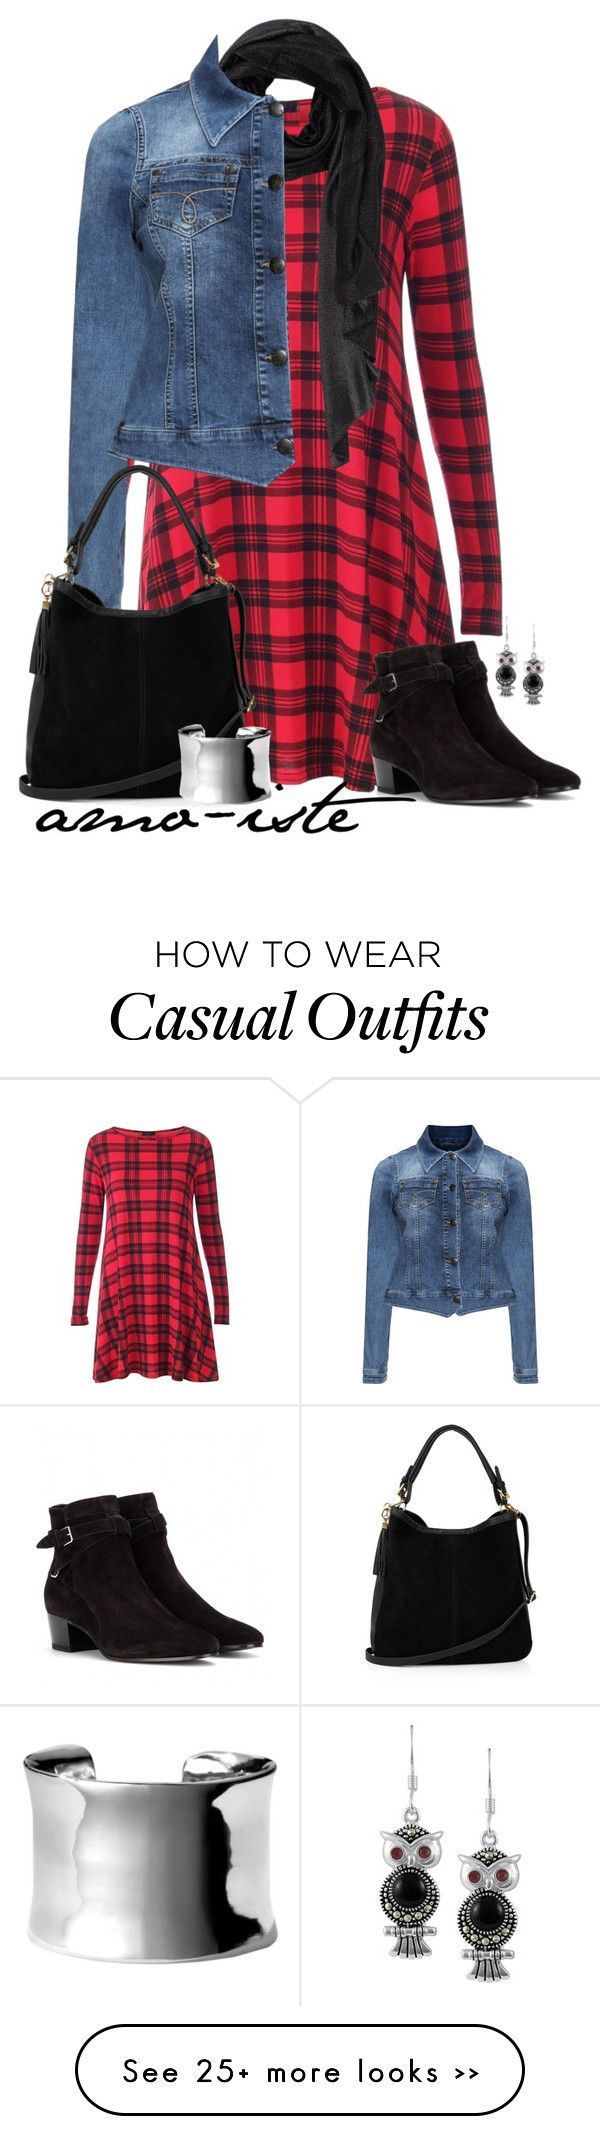 """""""Denim Jacket - Plus Size"""" by amo-iste on Polyvore featuring Yves Saint Laurent, Zizzi, Oasis, Nordstrom and Jewel Exclusive"""